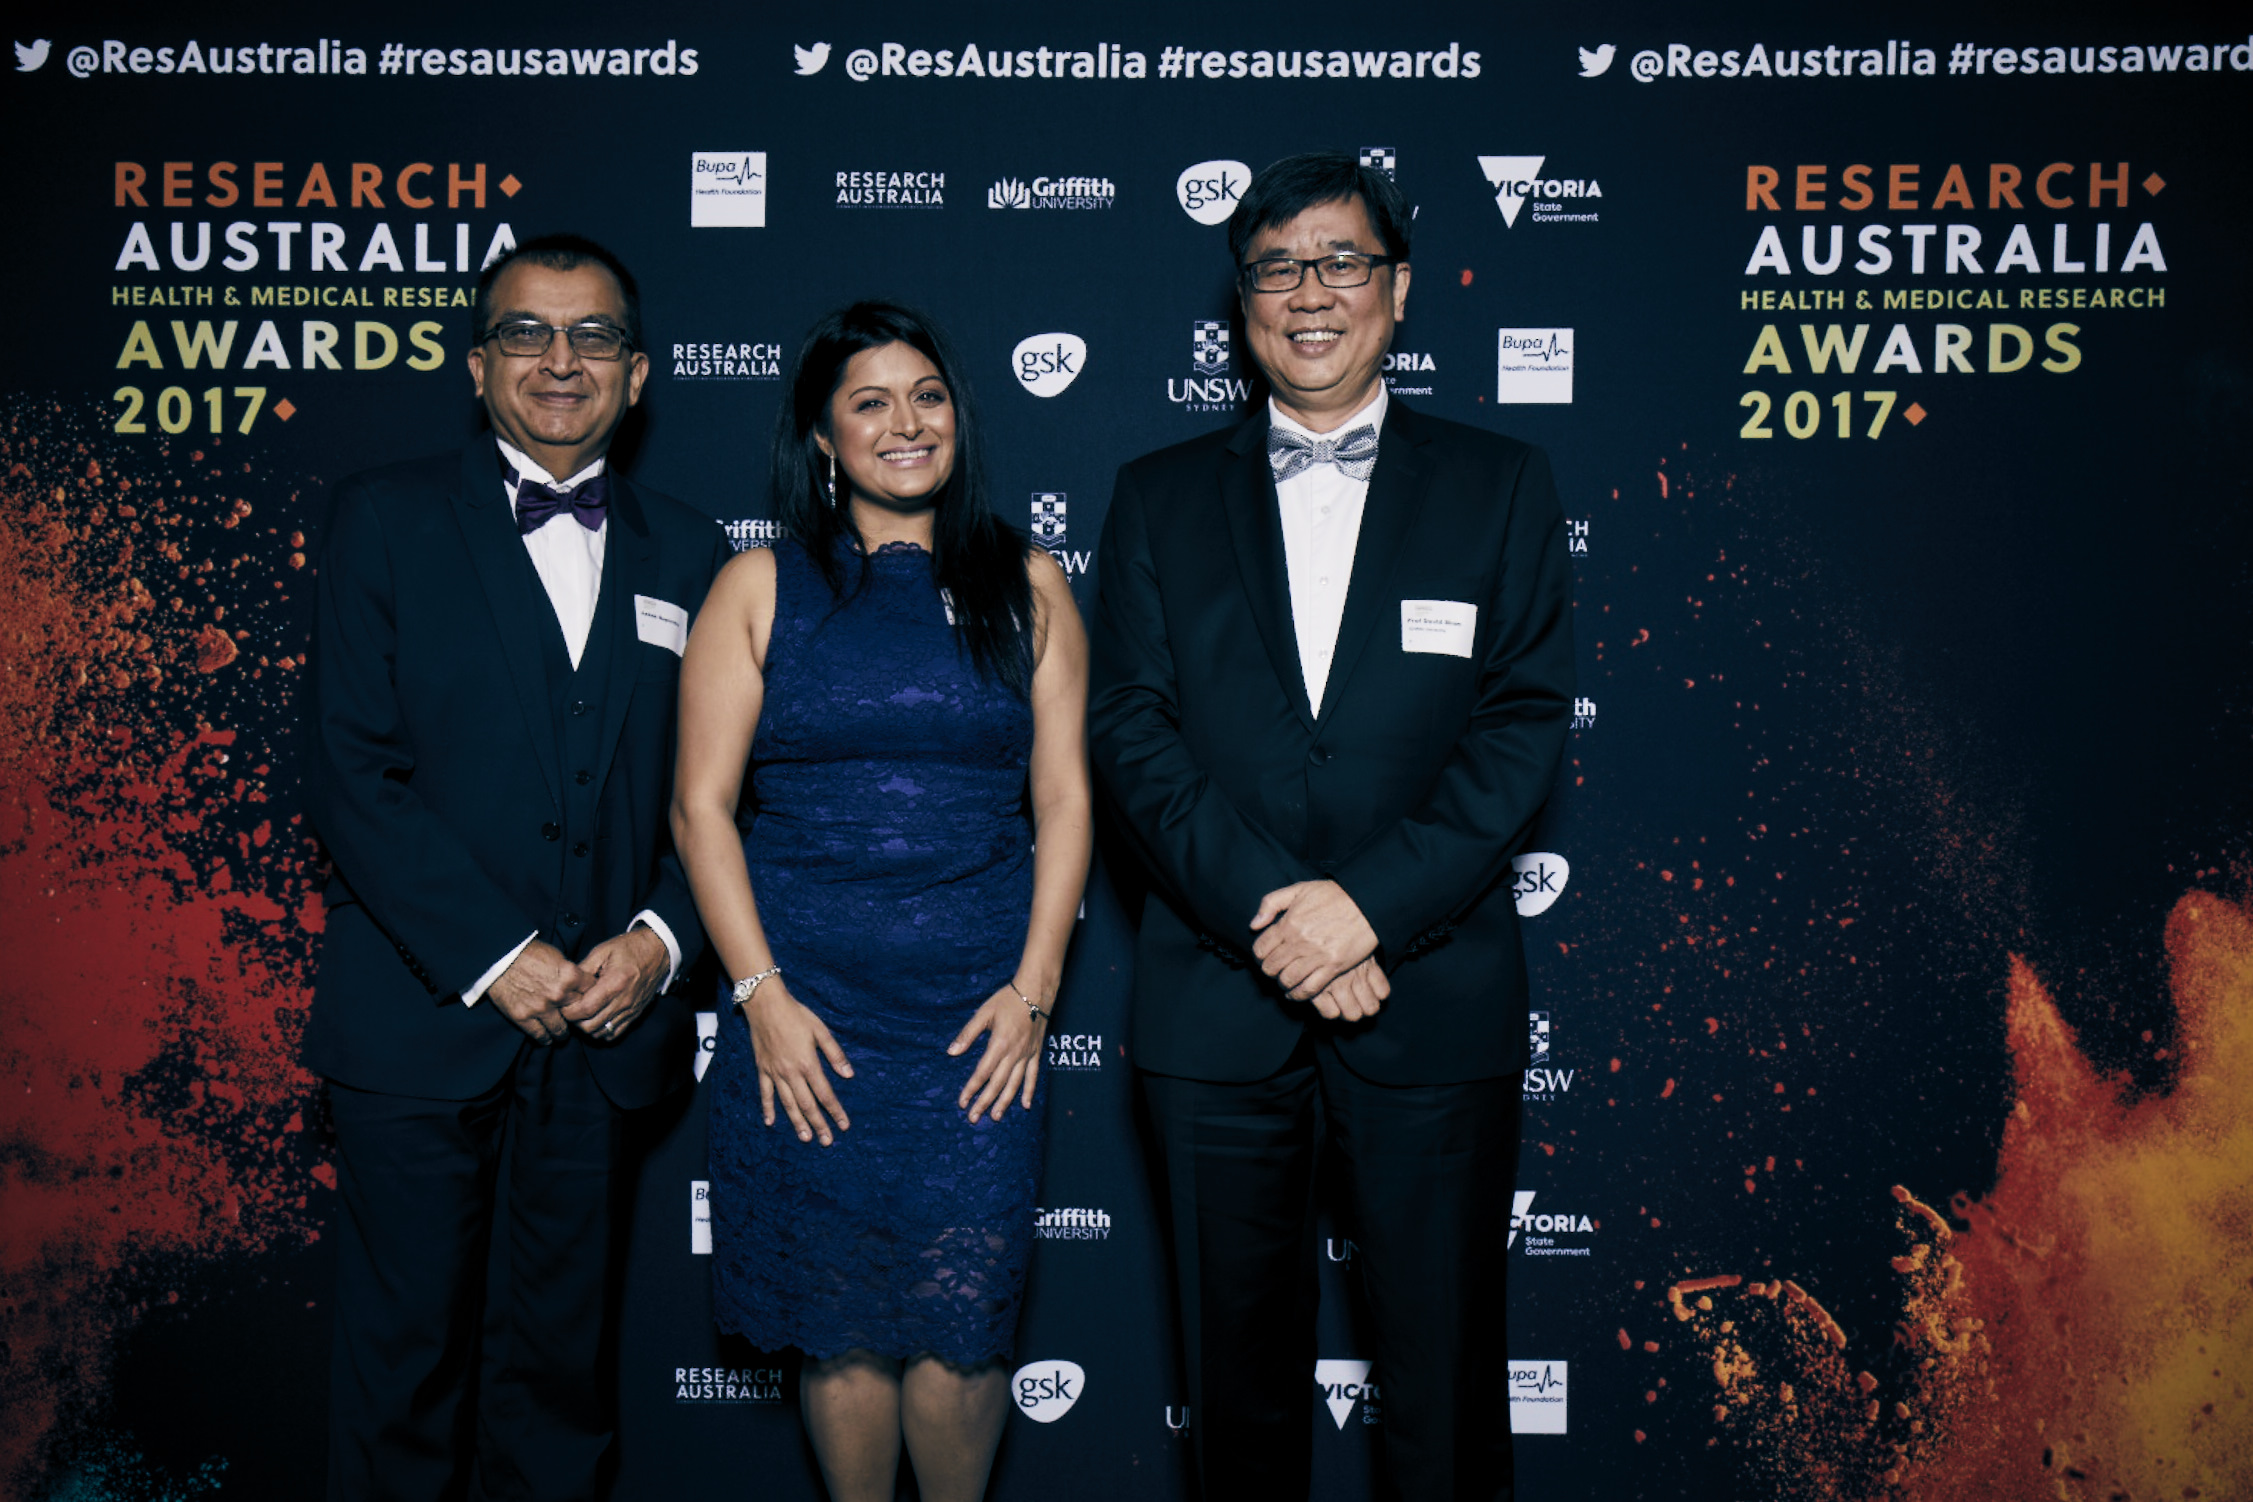 2017 Griffith University Discovery Award Winner: Dr Avnika Ruparelia